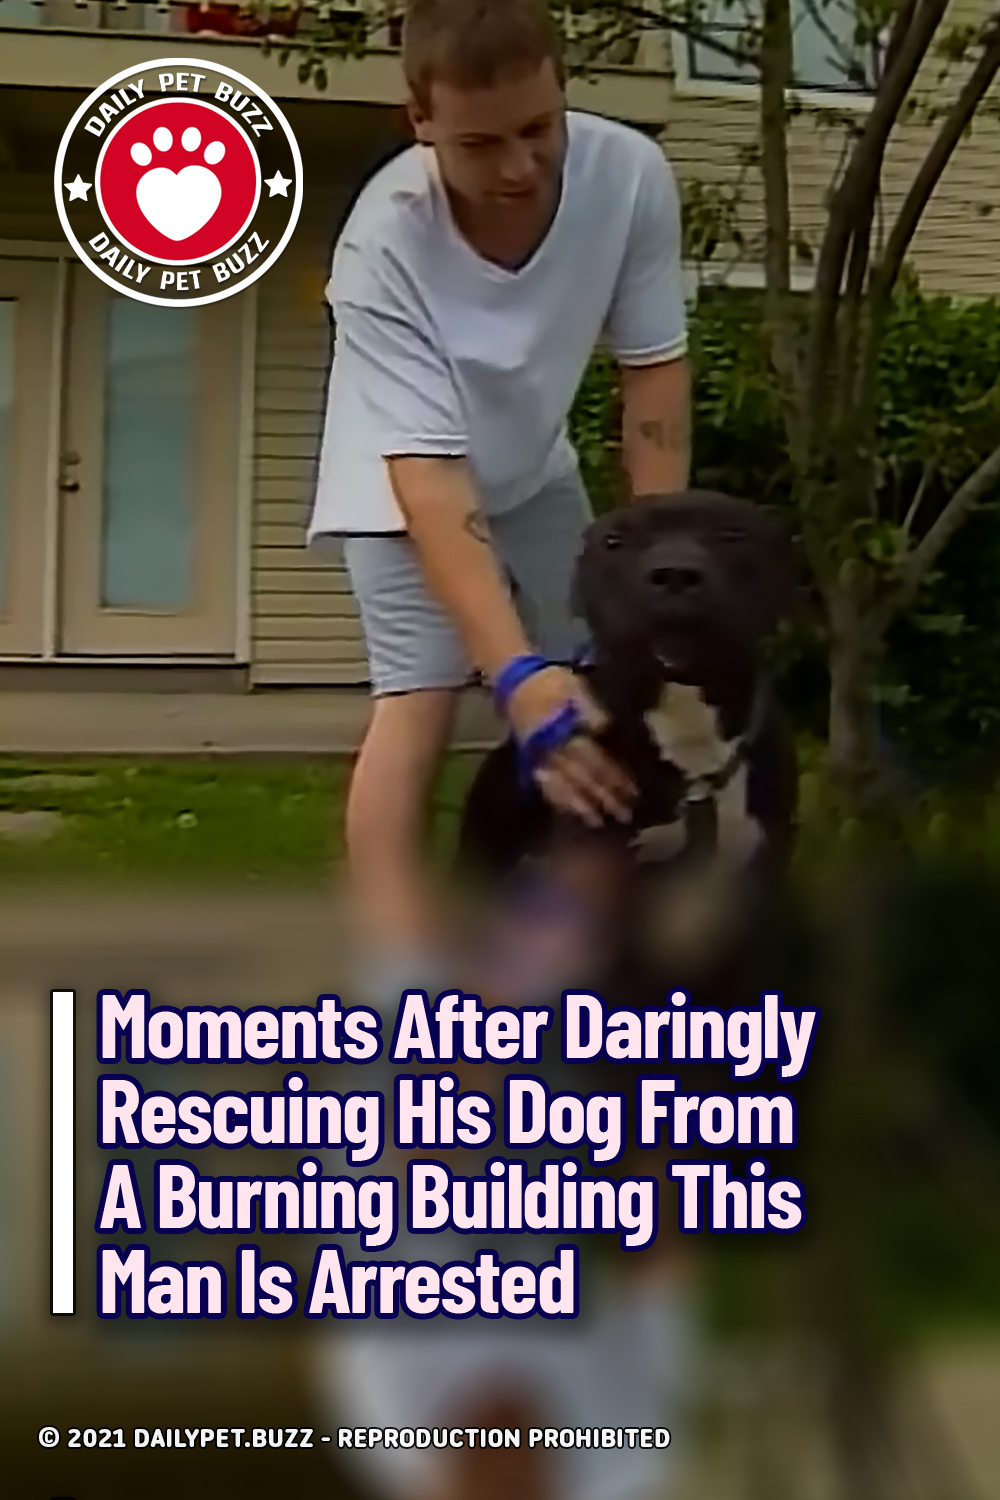 Moments After Daringly Rescuing His Dog From A Burning Building This Man Is Arrested